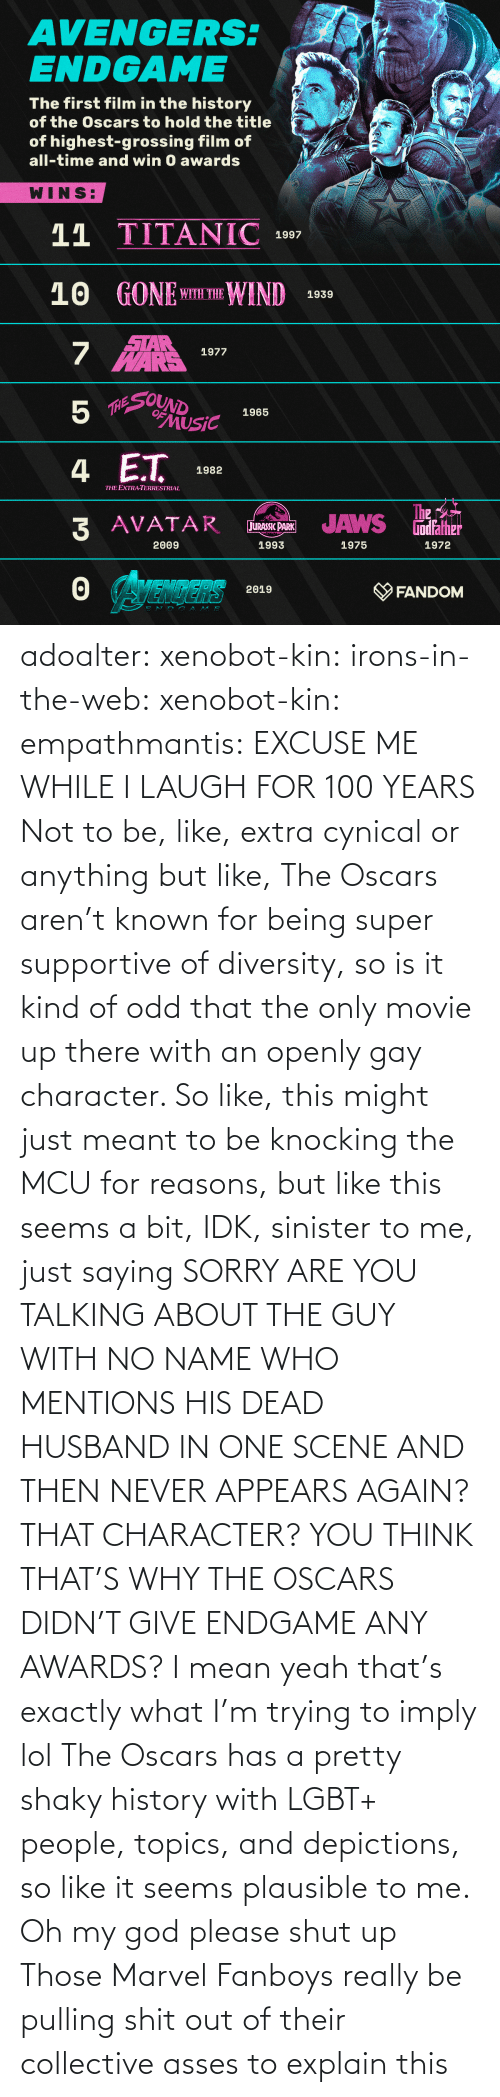 Be Like, God, and Lgbt: adoalter: xenobot-kin:   irons-in-the-web:  xenobot-kin:   empathmantis: EXCUSE ME WHILE I LAUGH FOR 100 YEARS Not to be, like, extra cynical or anything but like, The Oscars aren't known for being super supportive of diversity, so is it kind of odd that the only movie up there with an openly gay character. So like, this might just meant to be knocking the MCU for reasons, but like this seems a bit, IDK, sinister to me, just saying    SORRY ARE YOU TALKING ABOUT THE GUY WITH NO NAME WHO MENTIONS HIS DEAD HUSBAND IN ONE SCENE AND THEN NEVER APPEARS AGAIN? THAT CHARACTER? YOU THINK THAT'S WHY THE OSCARS DIDN'T GIVE ENDGAME ANY AWARDS?  I mean yeah that's exactly what I'm trying to imply lol The Oscars has a pretty shaky history with LGBT+ people, topics, and depictions, so like it seems plausible to me.    Oh my god please shut up    Those Marvel Fanboys really be pulling shit out of their collective asses to explain this